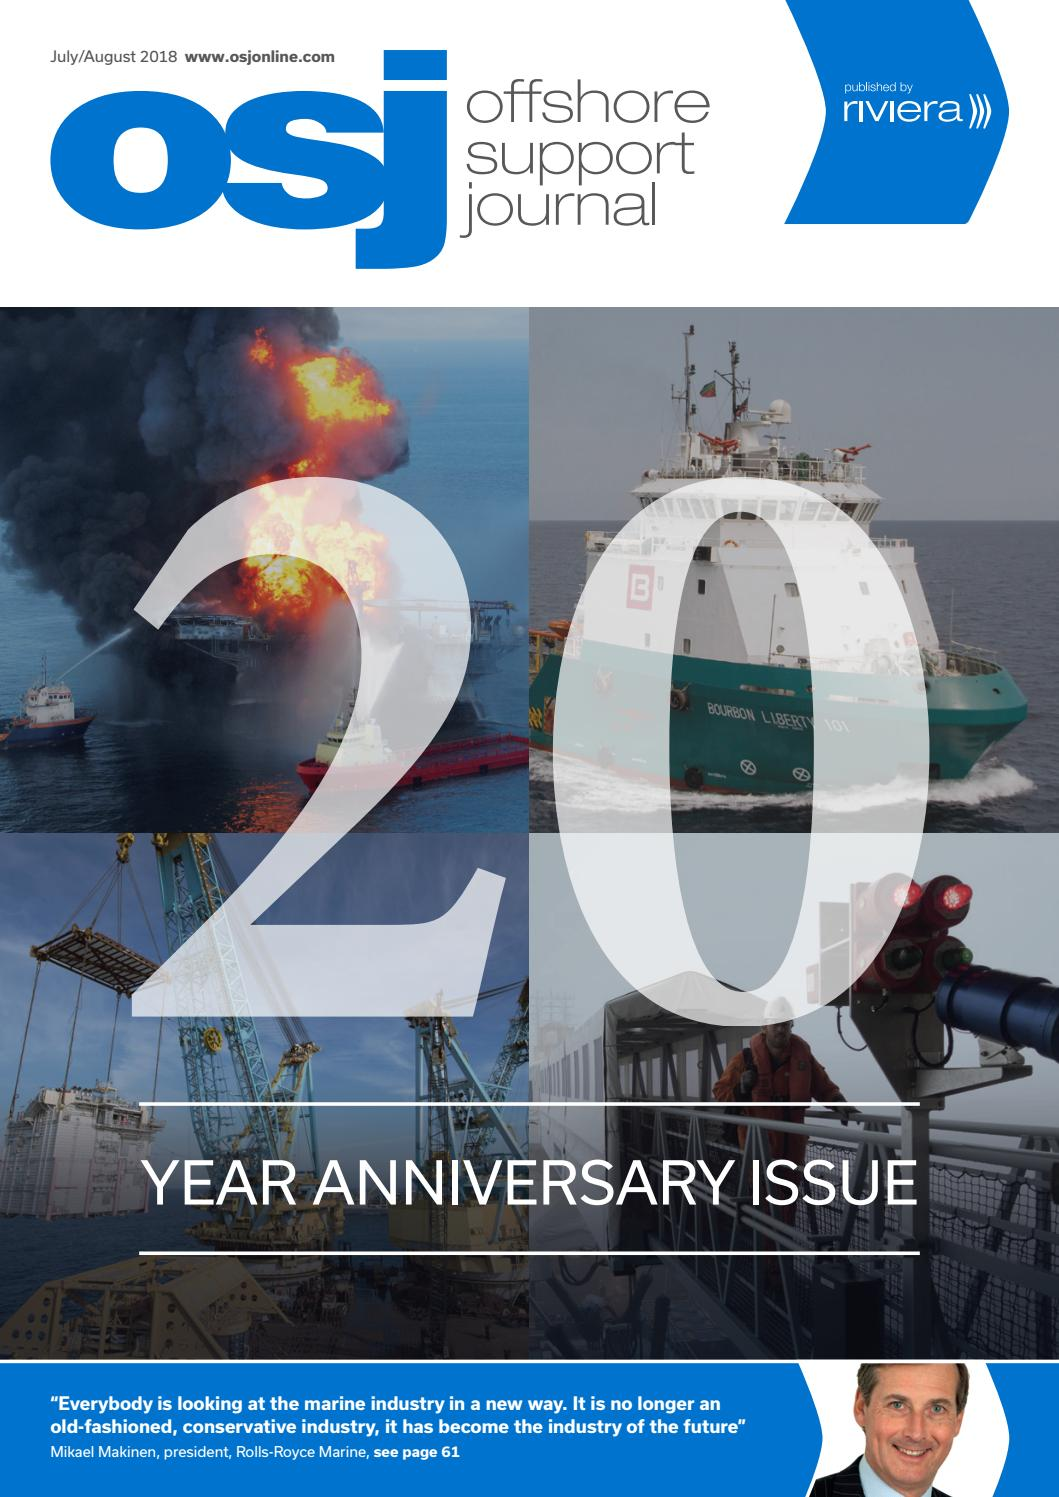 20f8dc78b Offshore Support Journal July August 2018 by rivieramaritimemedia - issuu